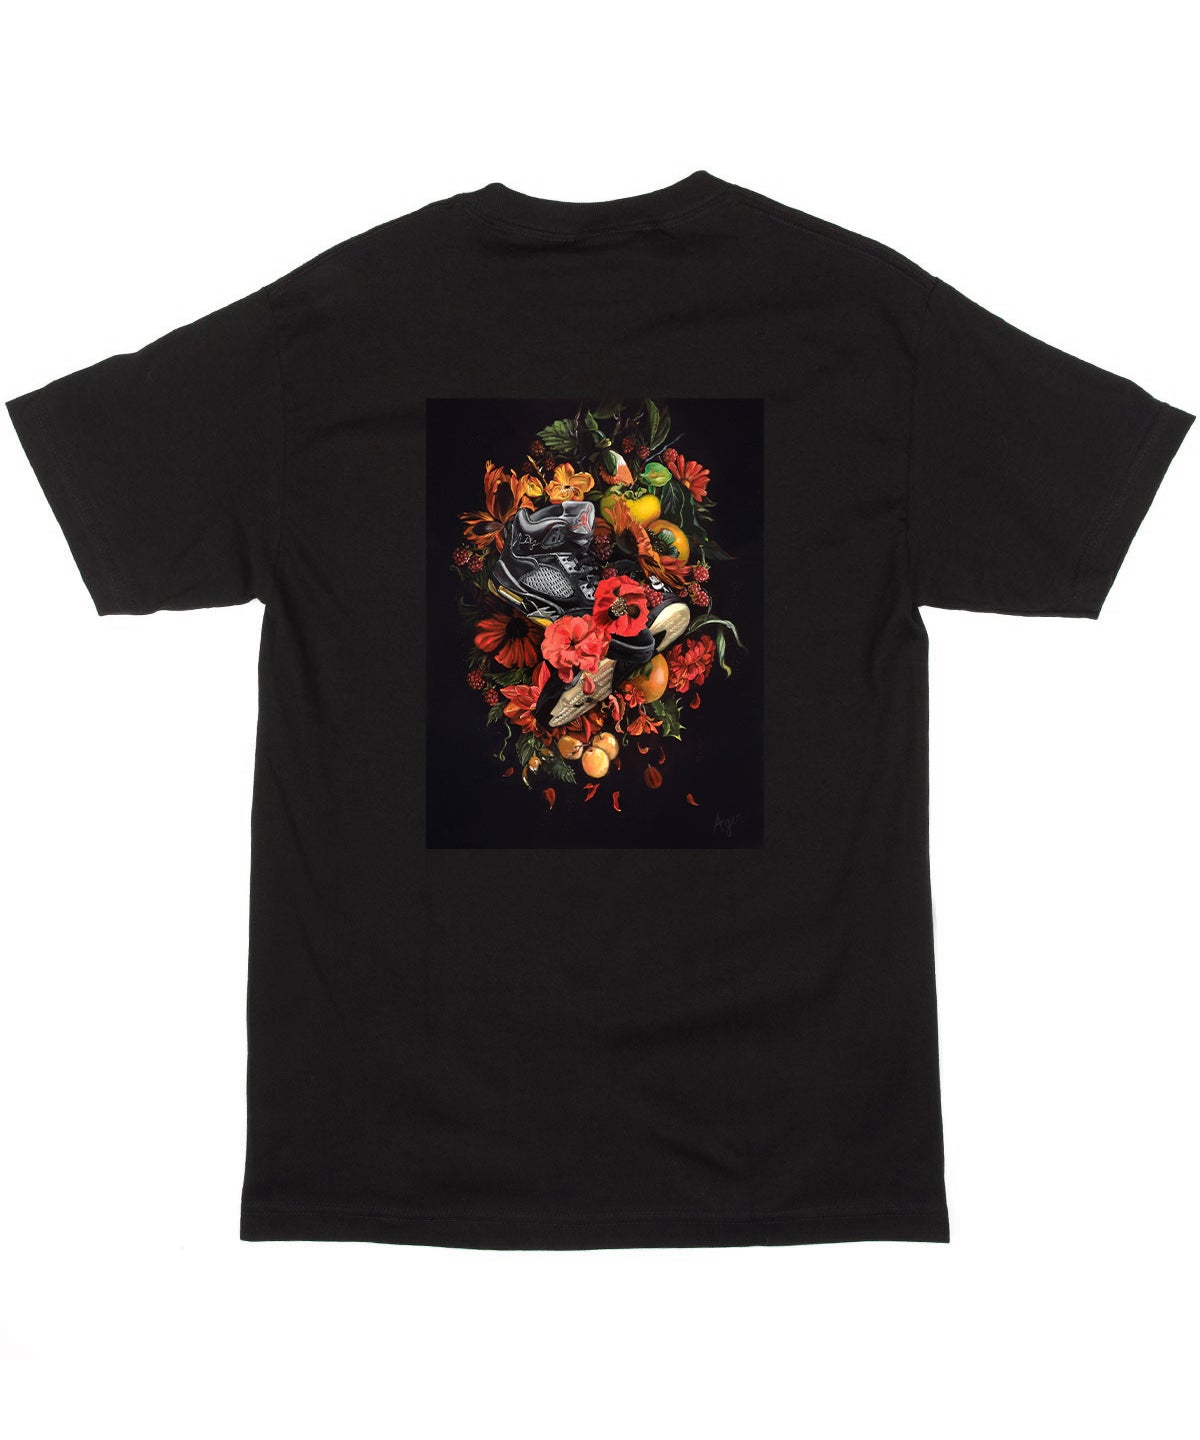 "Image of ""DOWN IN OLD FLAMES"" Short Sleeve T-Shirt"